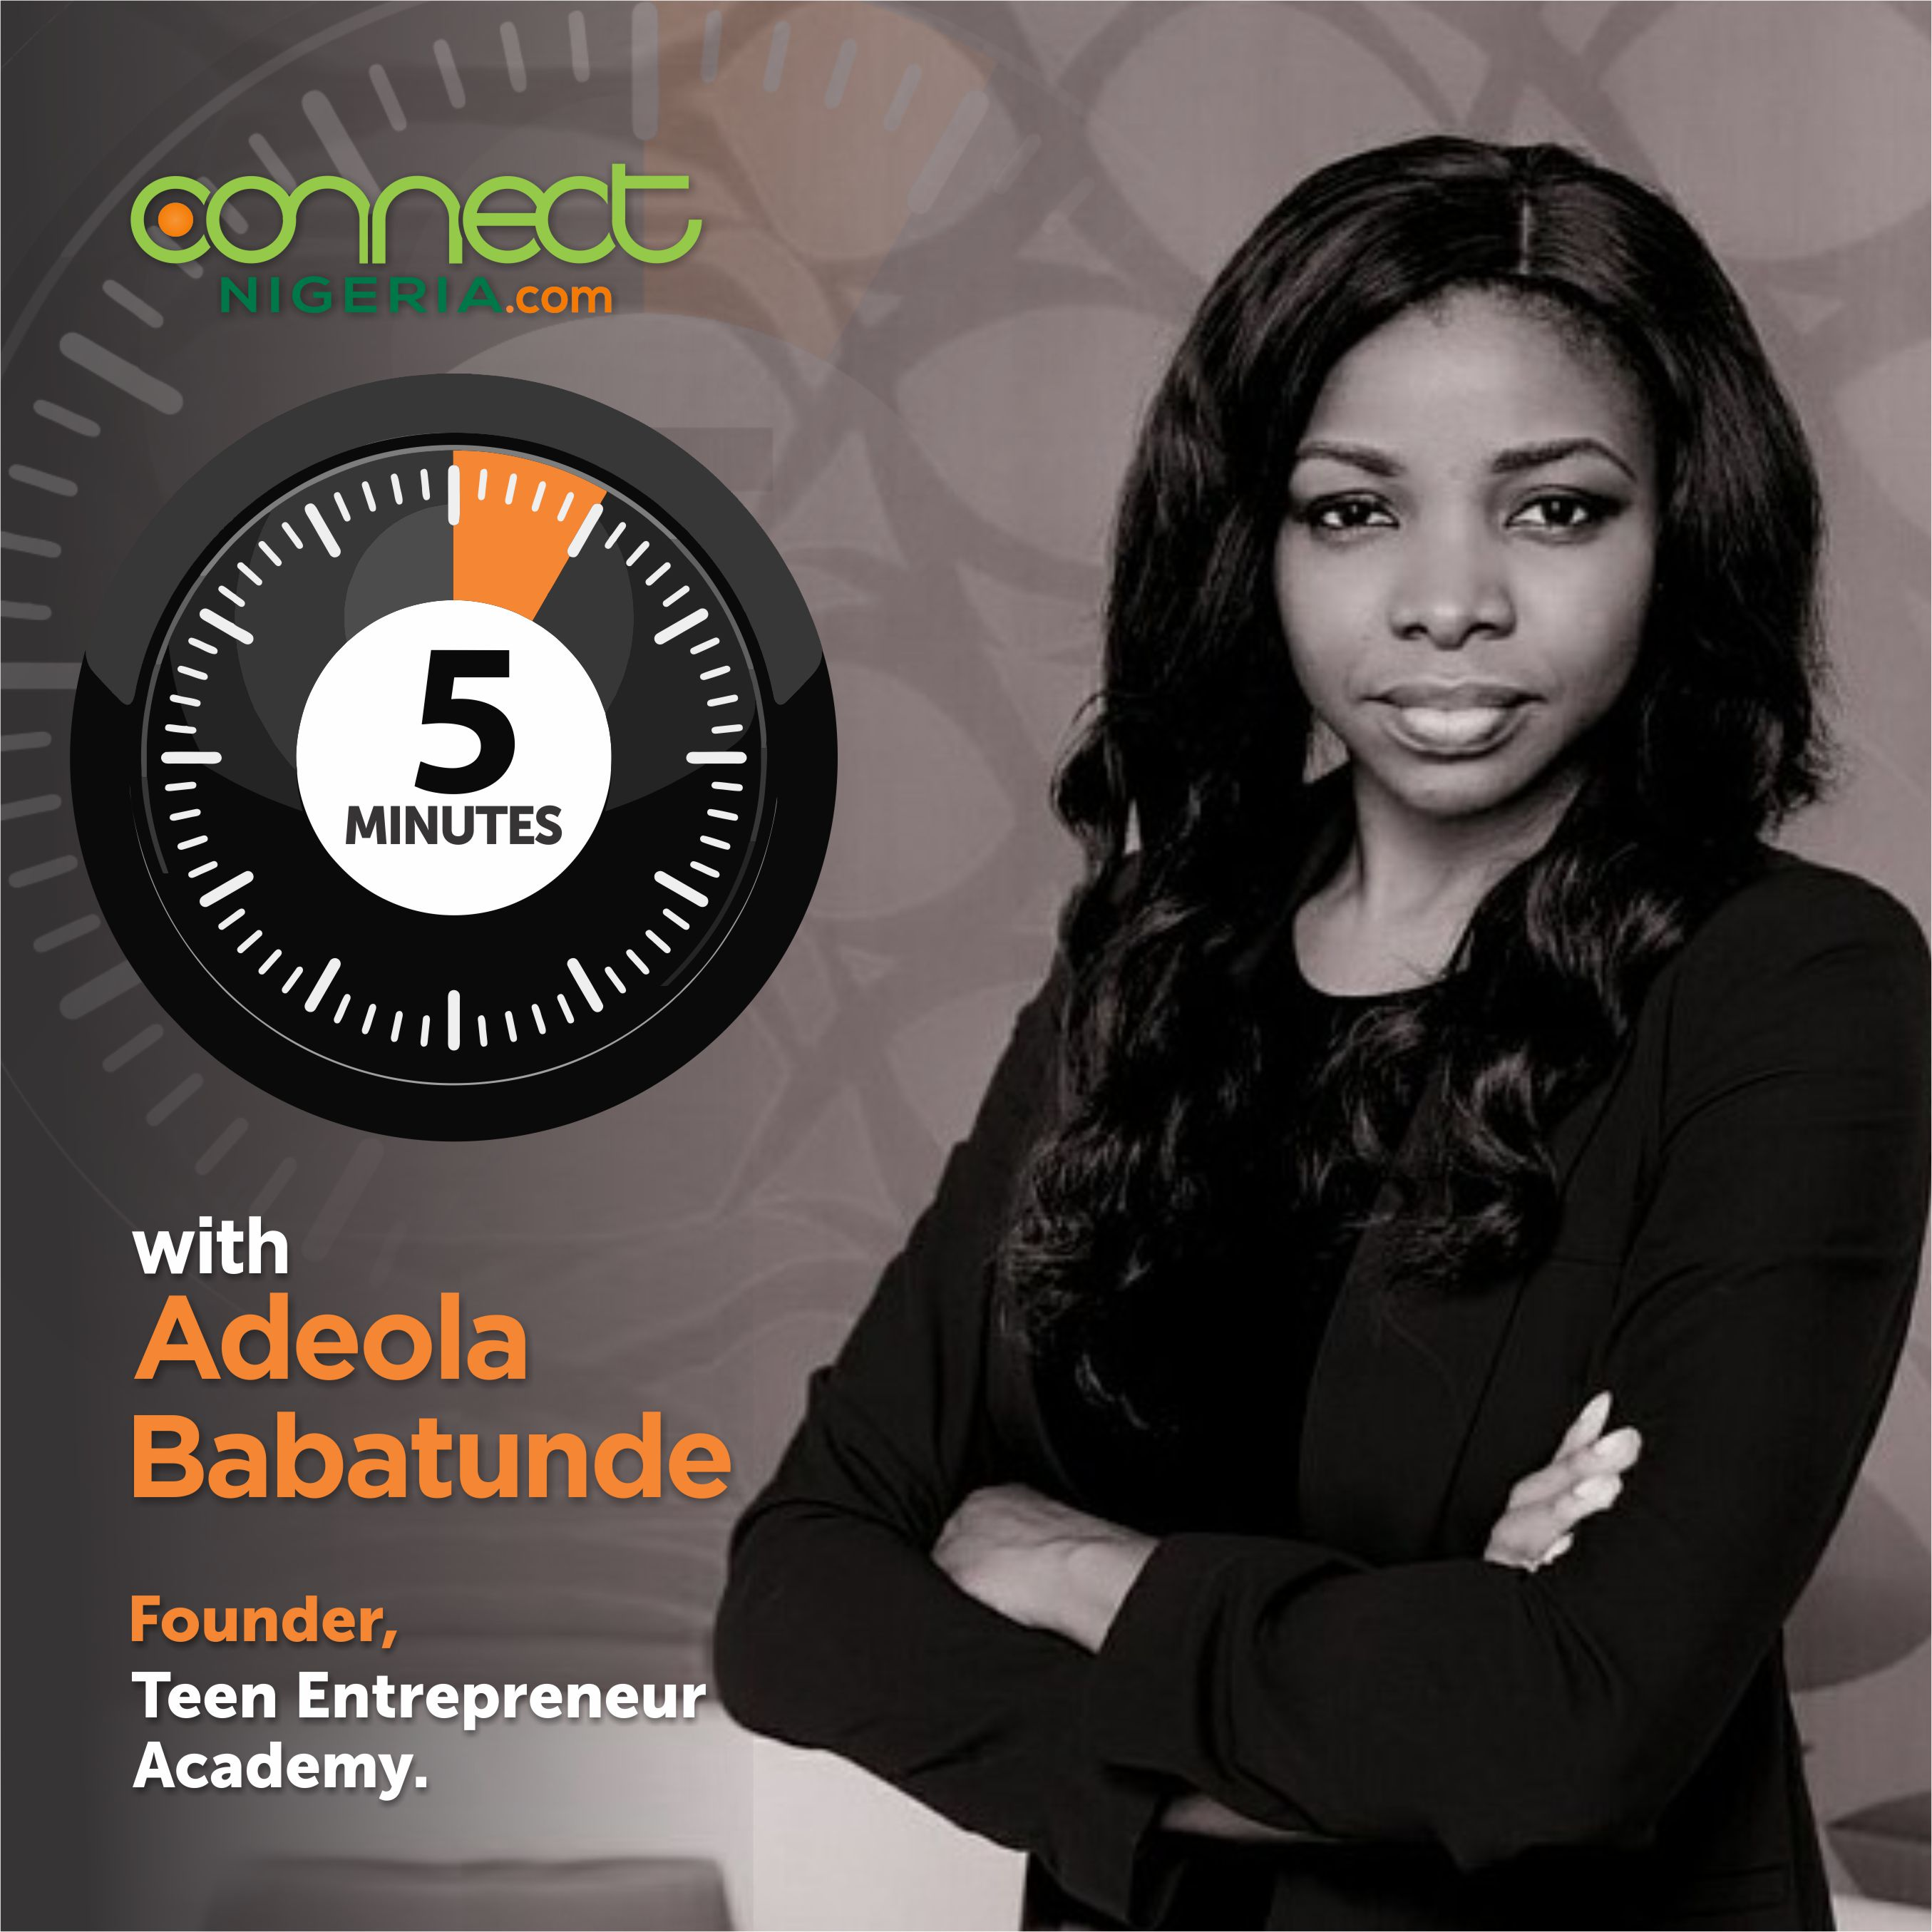 5 Minutes with Adeola Babatunde, Founder, Teen Entrepreneur Academy - www.connectnigeria.com